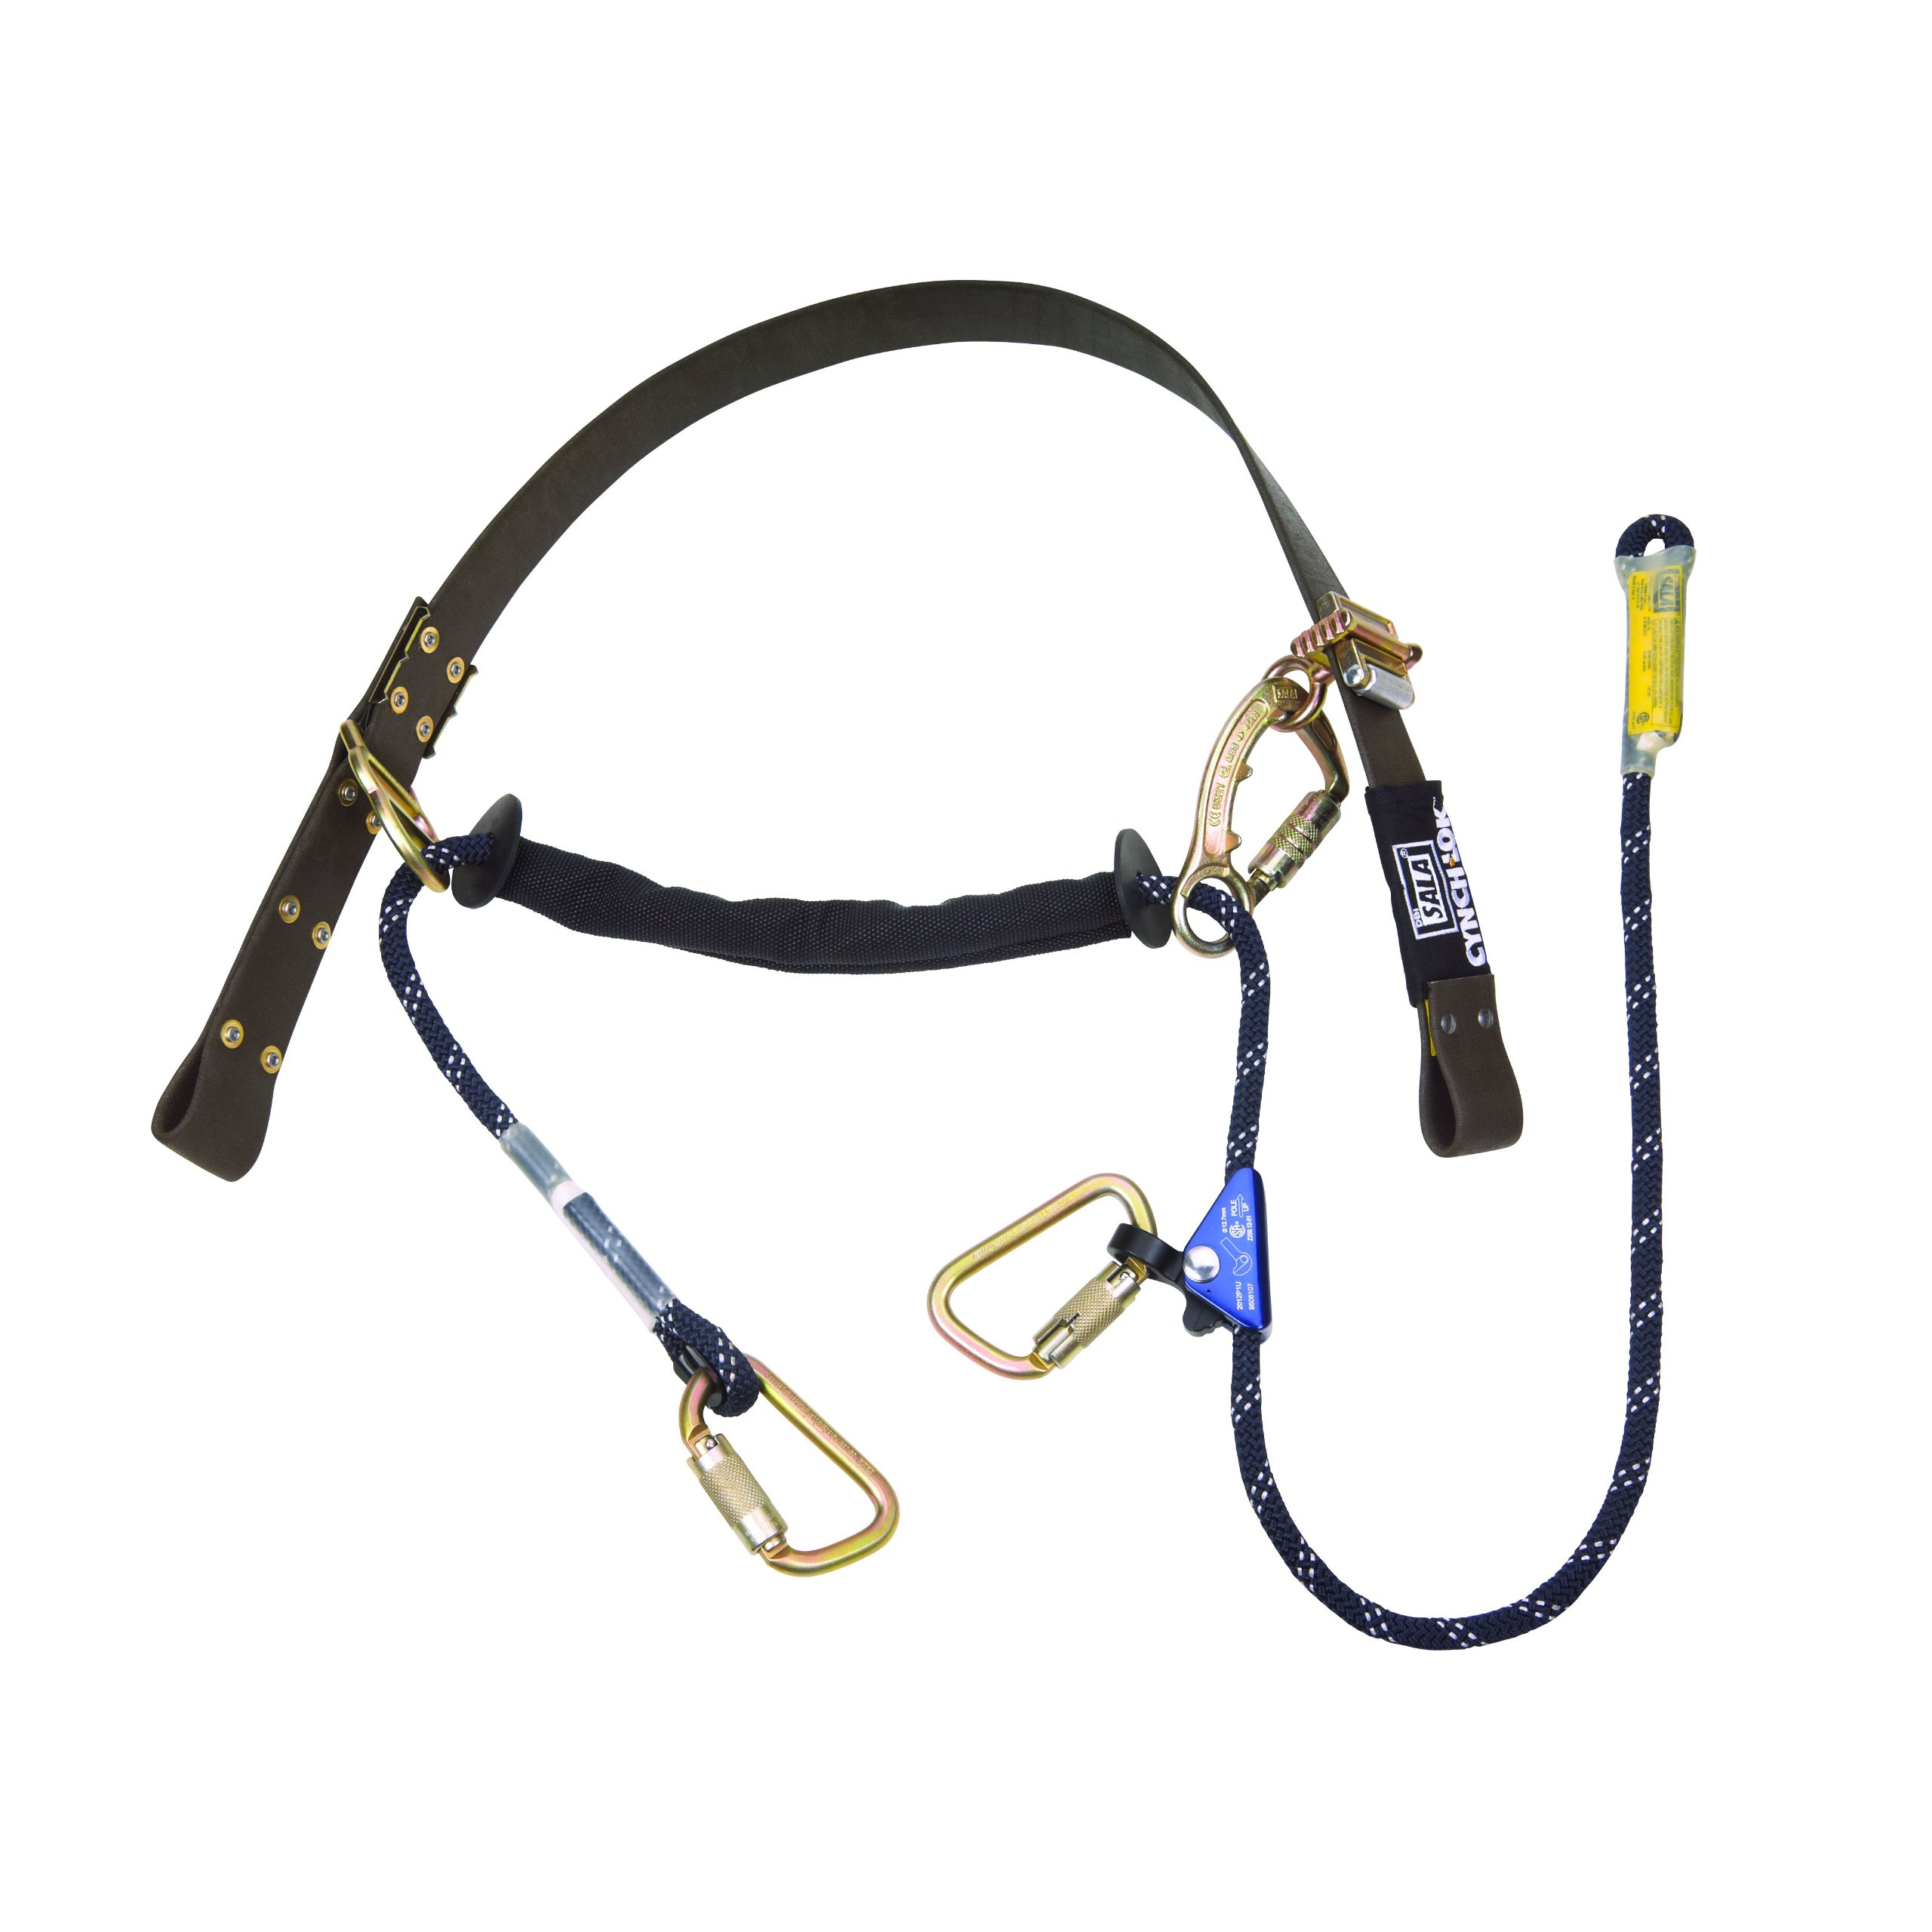 3M DBI-SALA Cynch-Lok 1204057 Fall Restriction Device, with Rope Lanyard For Distribution Poles Up To 185'' Dia, 58'' Circ, Brown/Blue